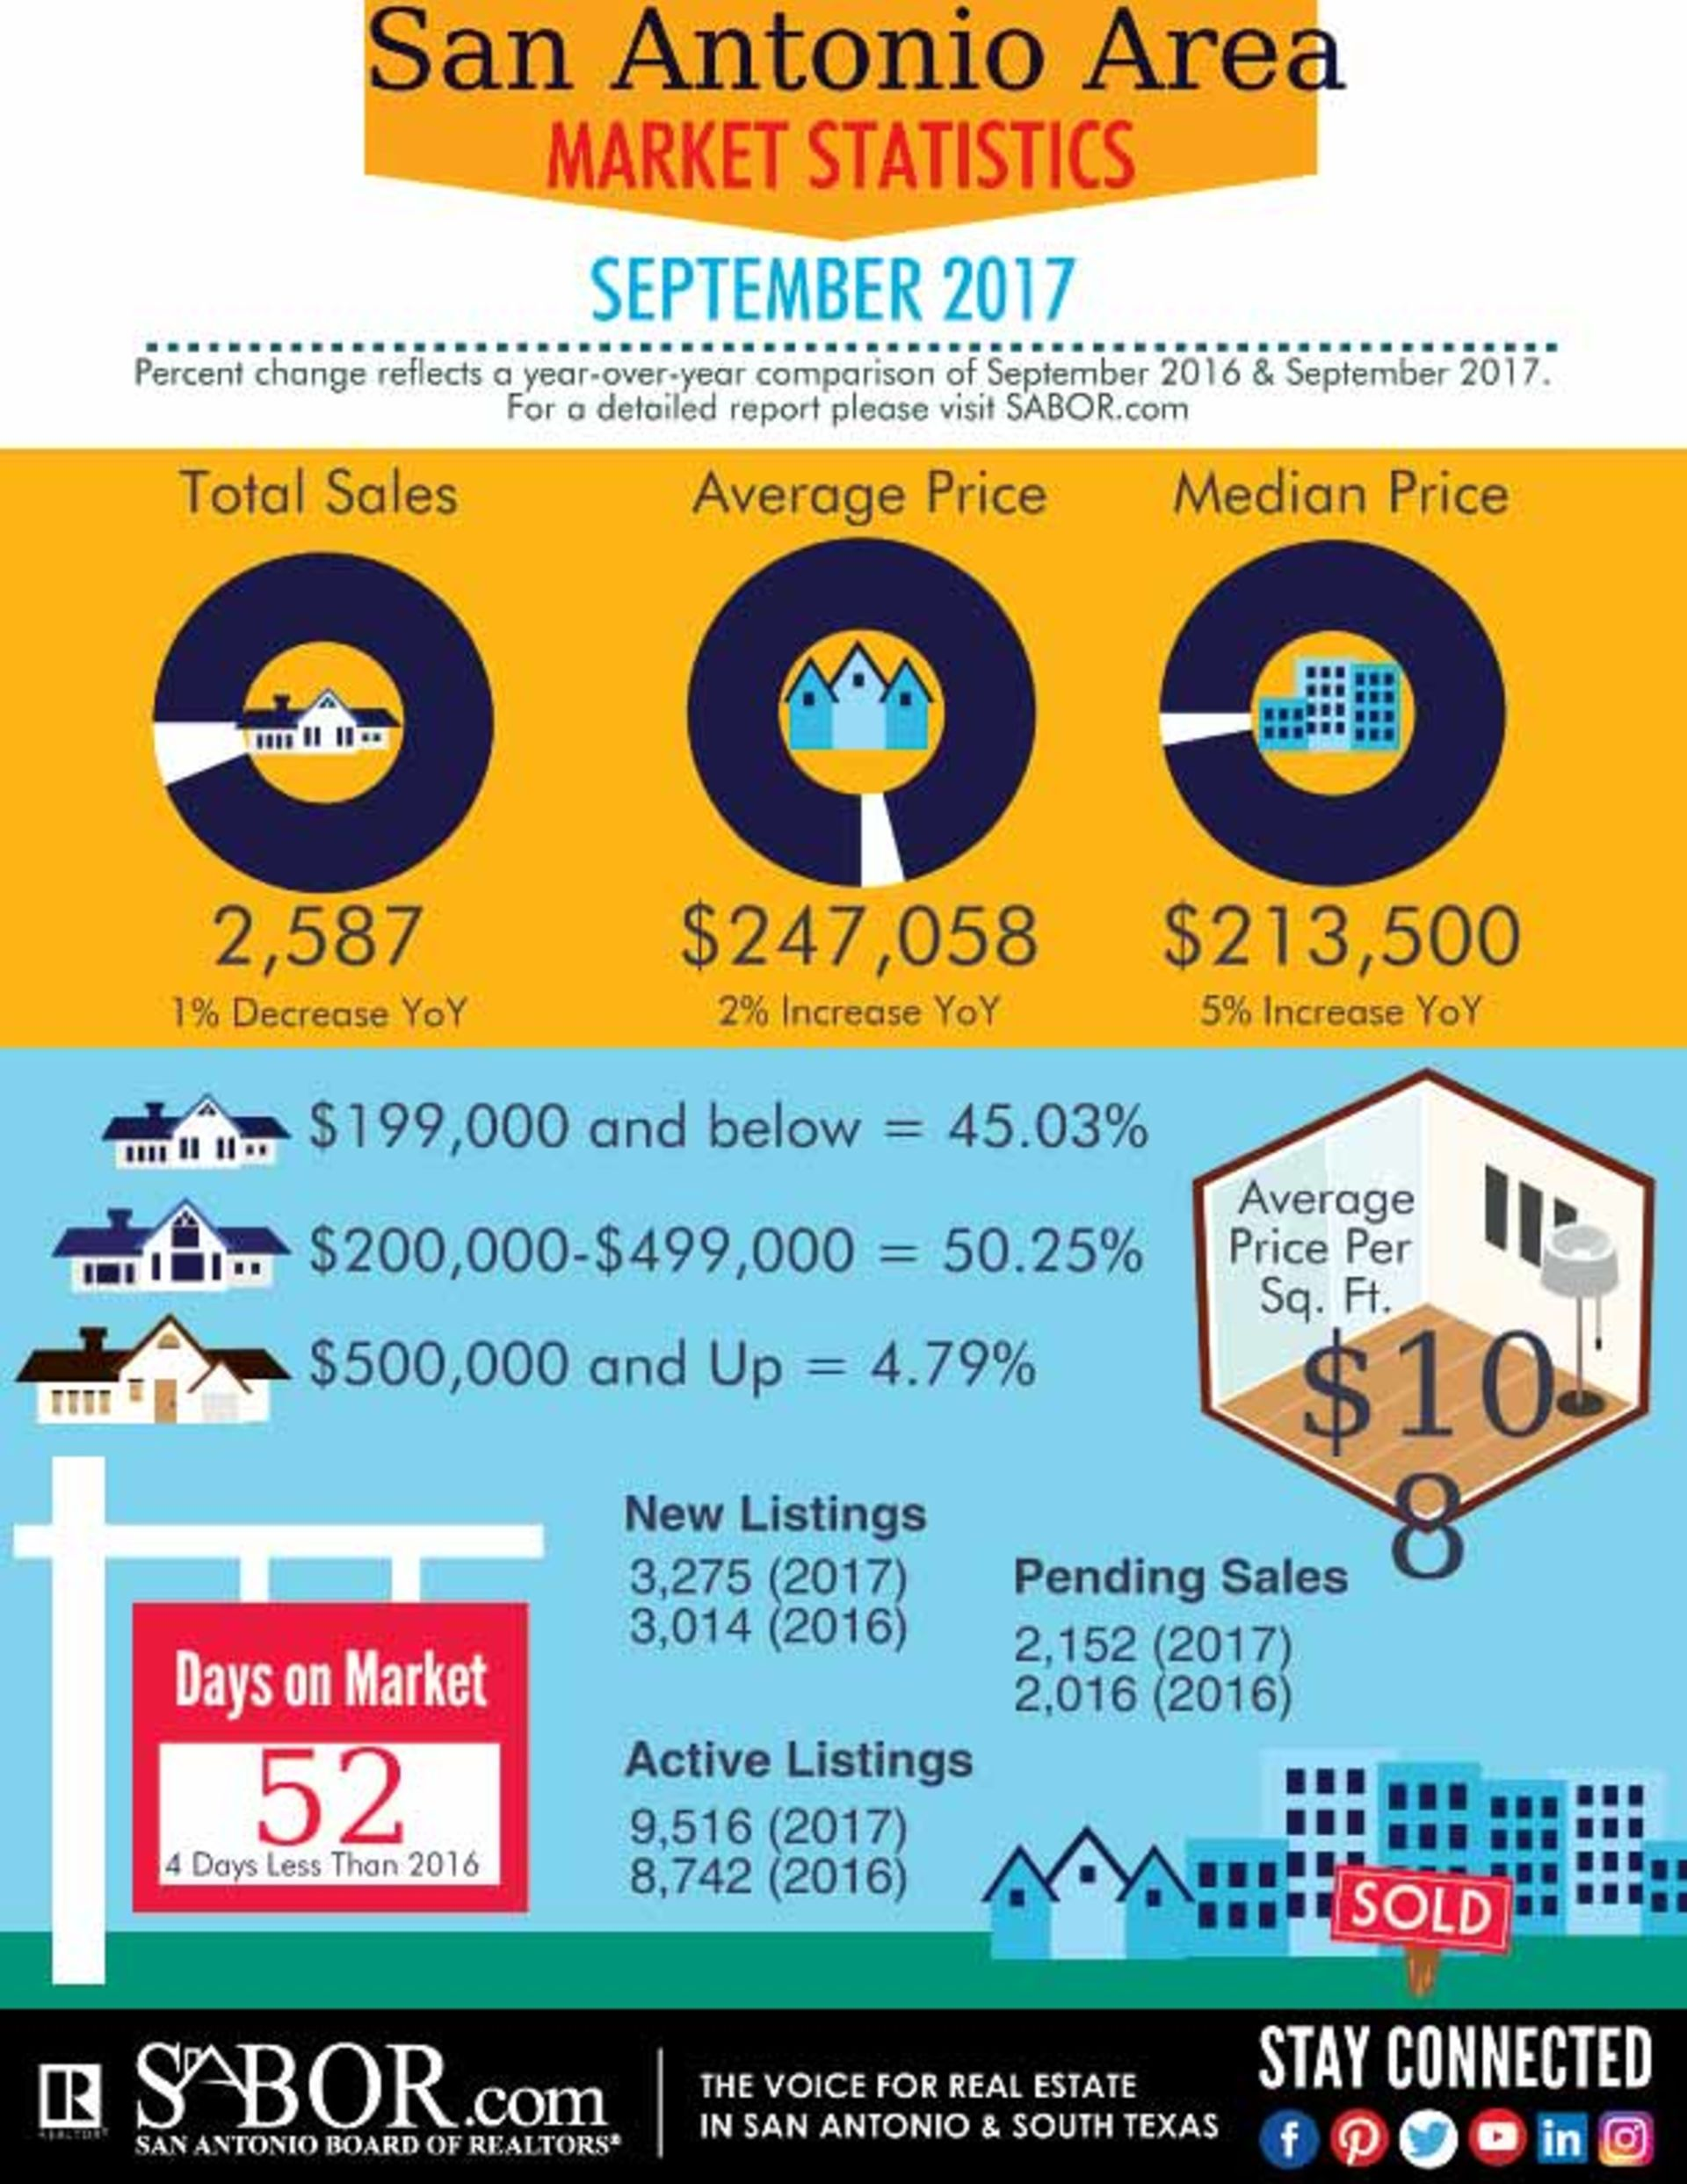 San Antonio Home Sales Taper in September Amid Tight Inventory